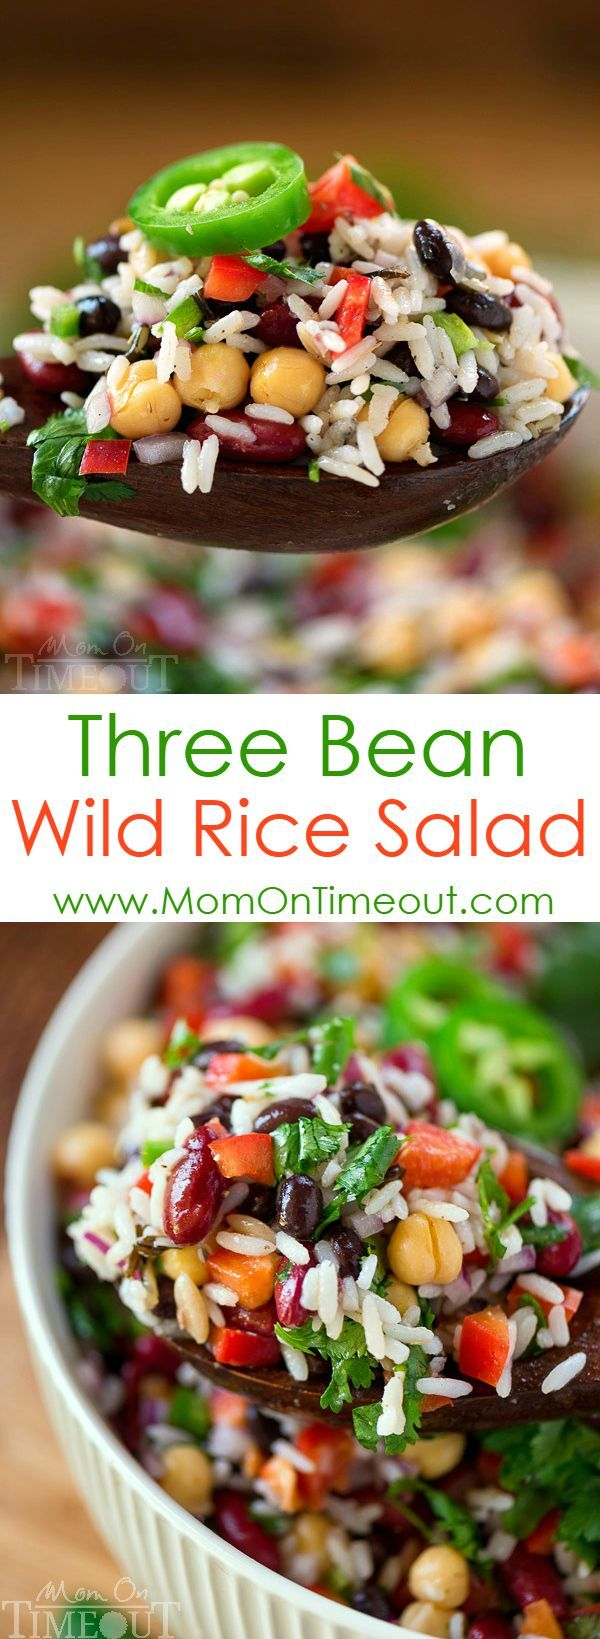 On hot summer nights, turn to this Three Bean Wild Rice Salad for an easy and delicious light dinner recipe that your family will DEVOUR. It also makes the perfect side dish for barbecues, parties, cookouts and more!